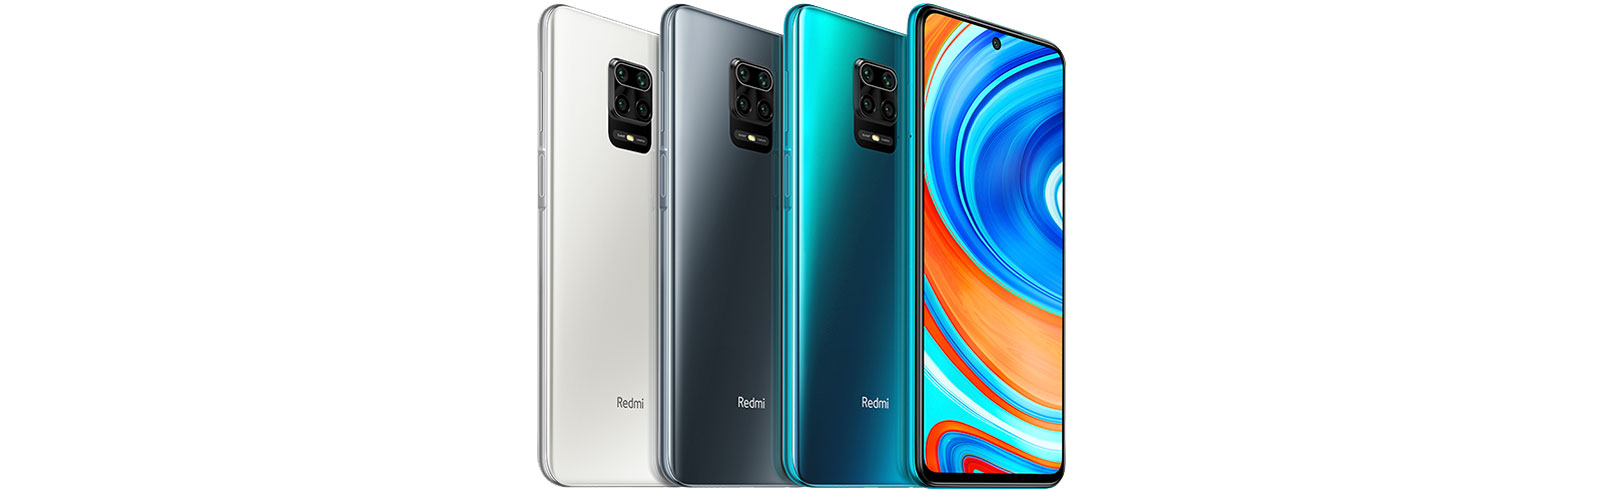 Redmi Note 9 Pro Max And Redmi Note 9 Pro Specifications Prices